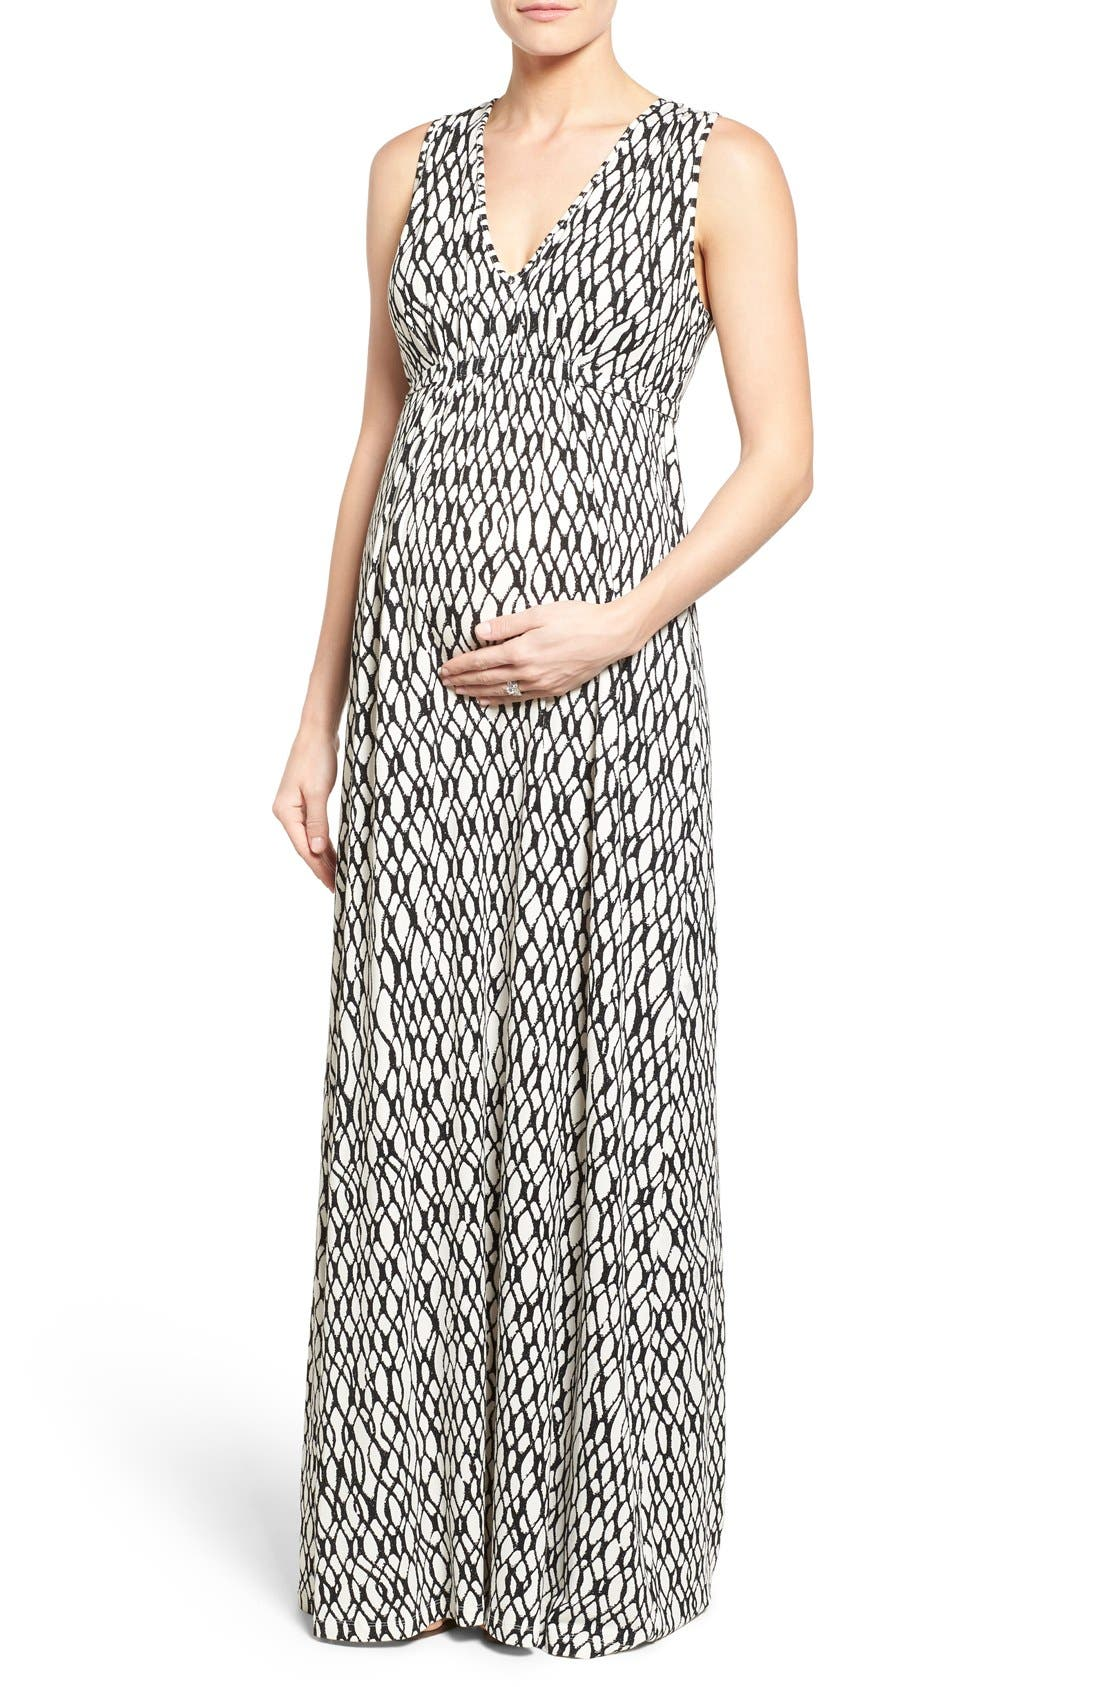 'Grecia' Print Jersey Maternity Maxi Dress,                             Main thumbnail 1, color,                             101